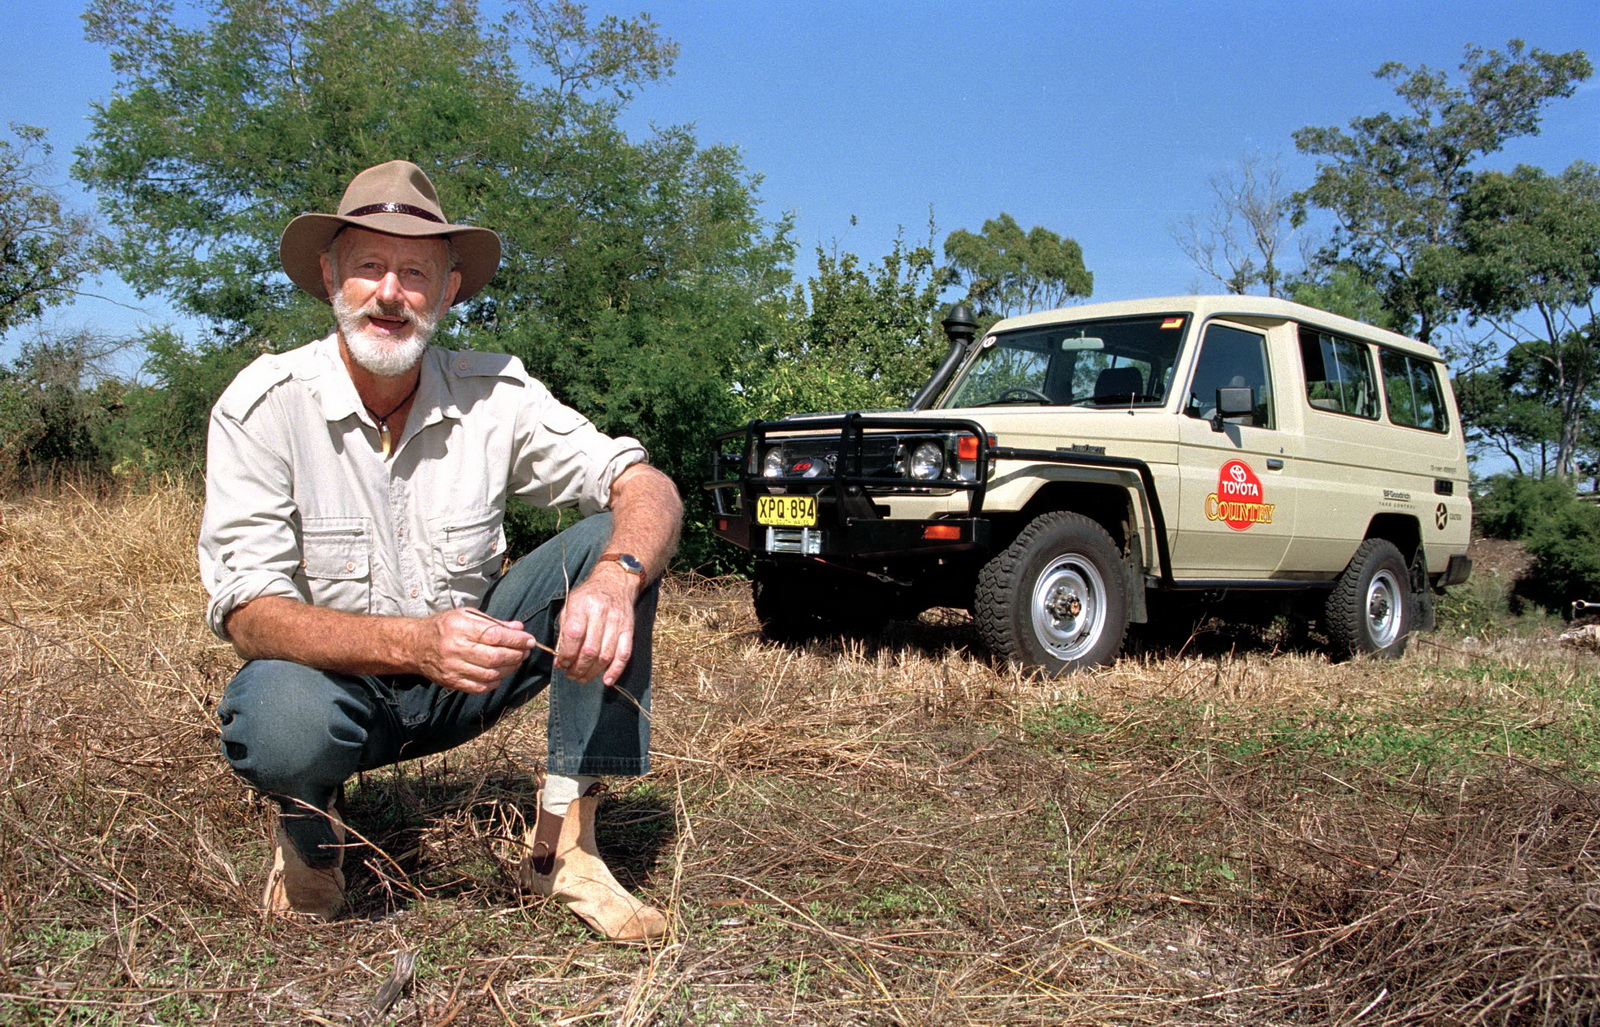 Malcolm Douglas and his 2002 Toyota LandCruiser 78 Series Troop Carrier. 020412-106-15A